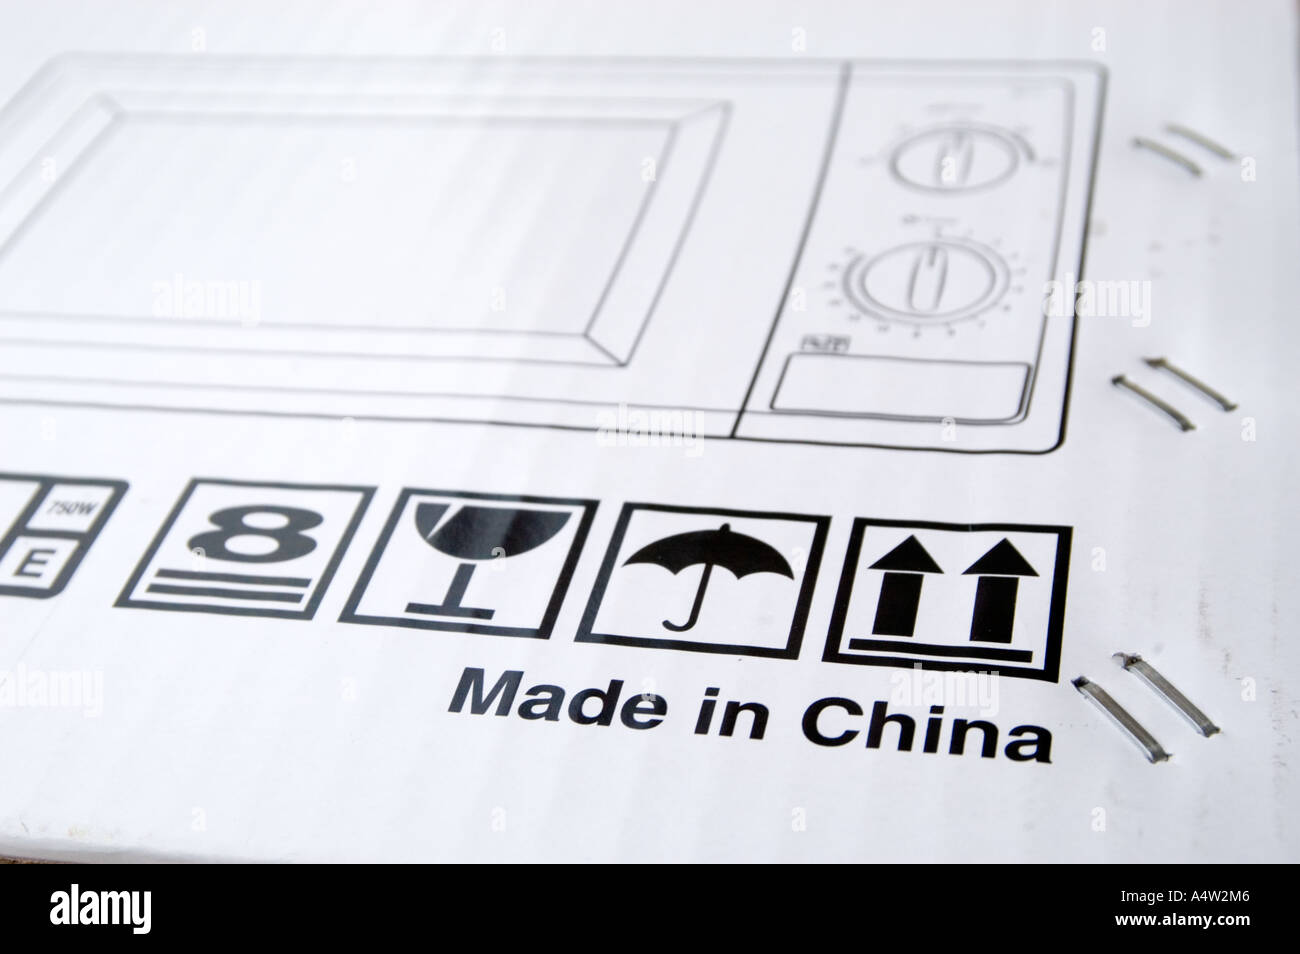 Made in China - Stock Image